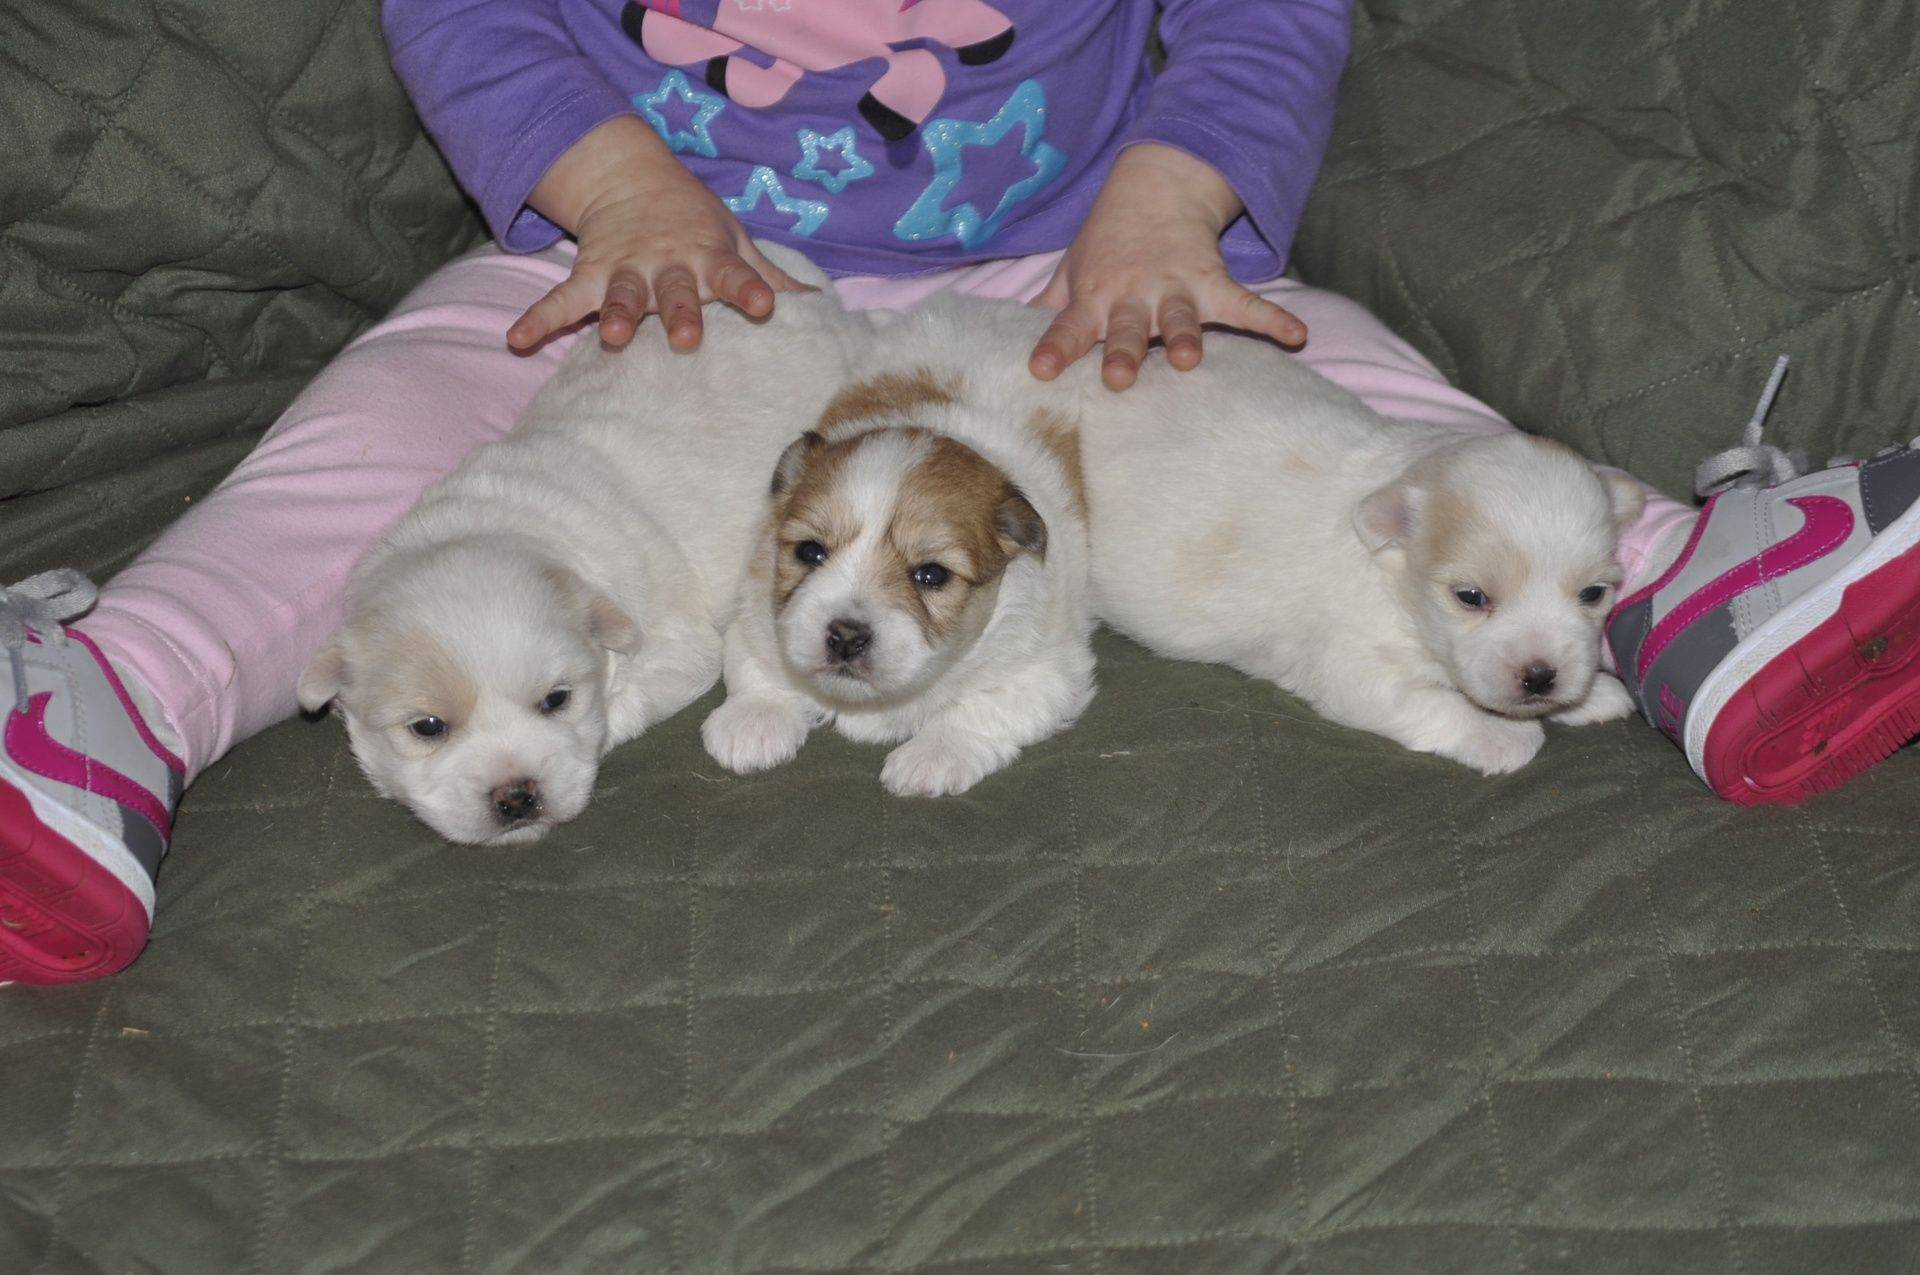 Trained Coton de tulear puppies